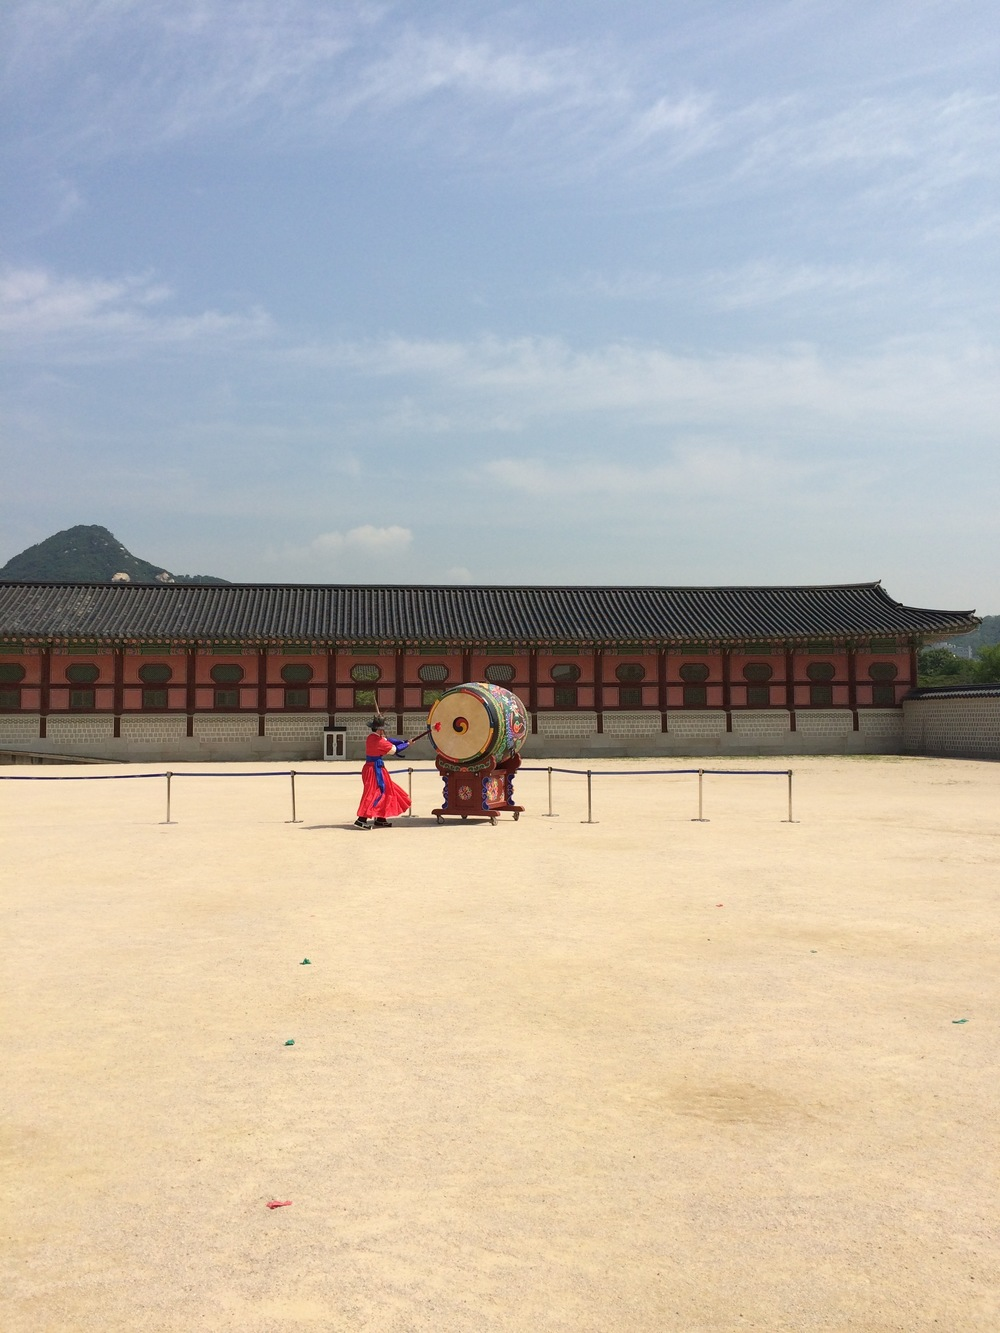 Ceremonial changing of the guard at South Korea's Gyeongbokgung Palace - that drum was awesome!!